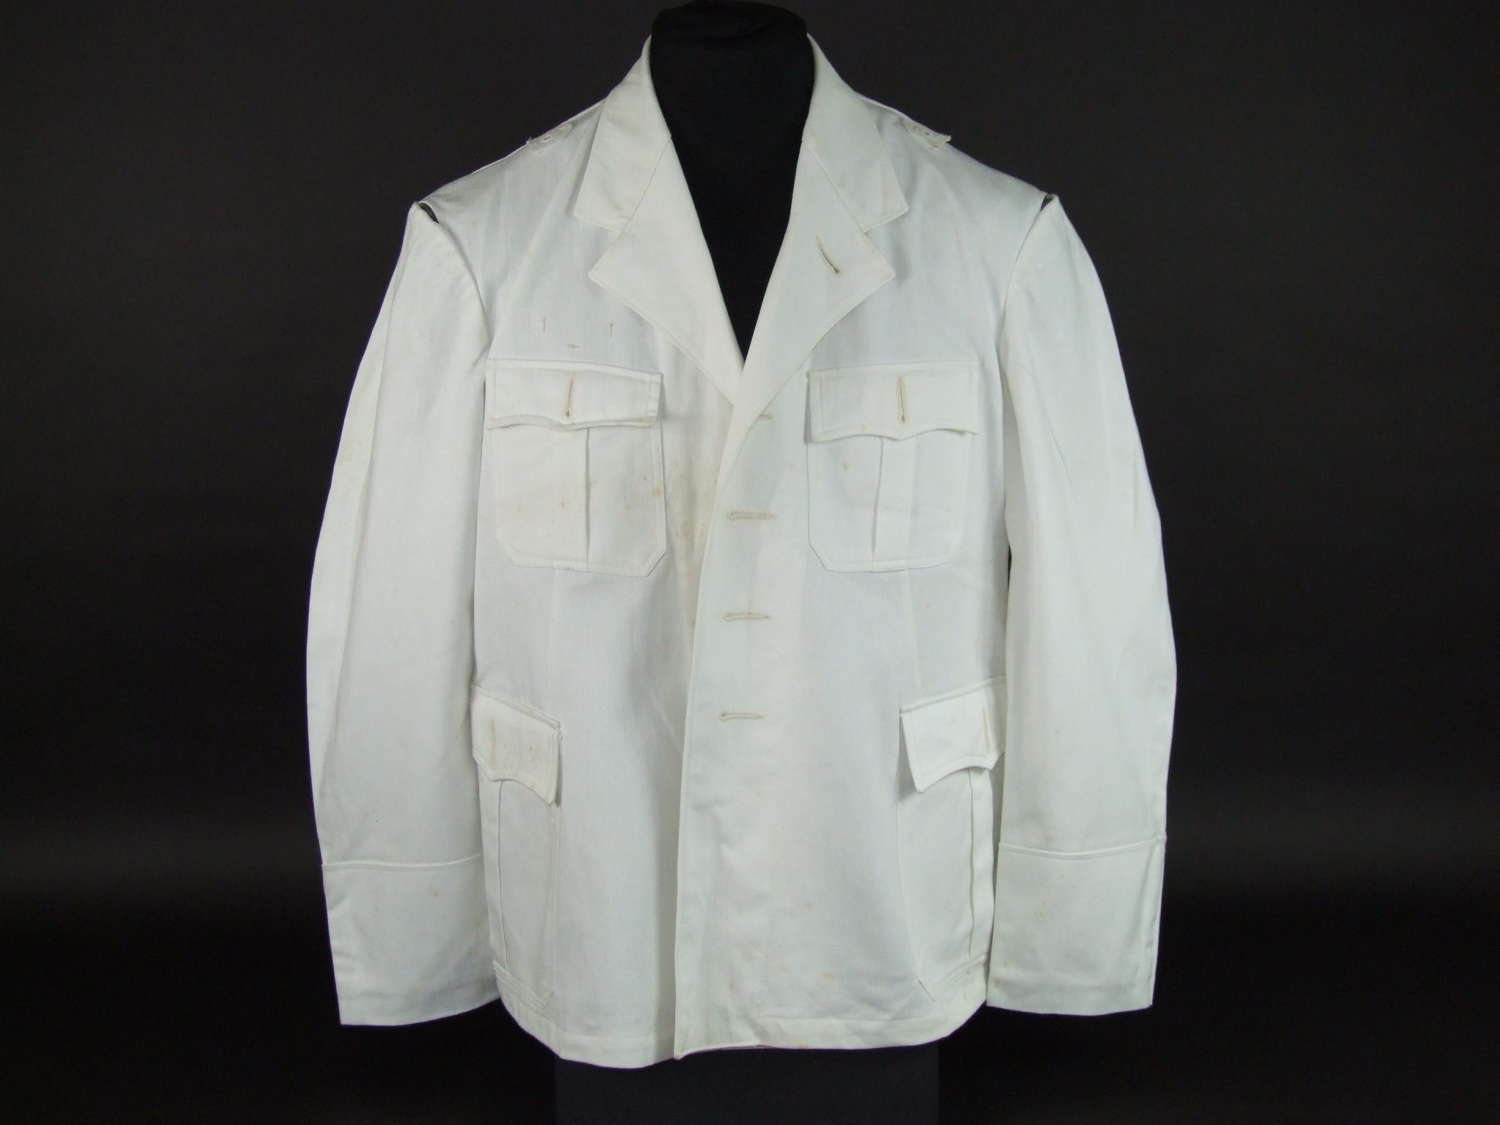 Kriegsmarine White Summer Tunic for Officers and Senior NCOs